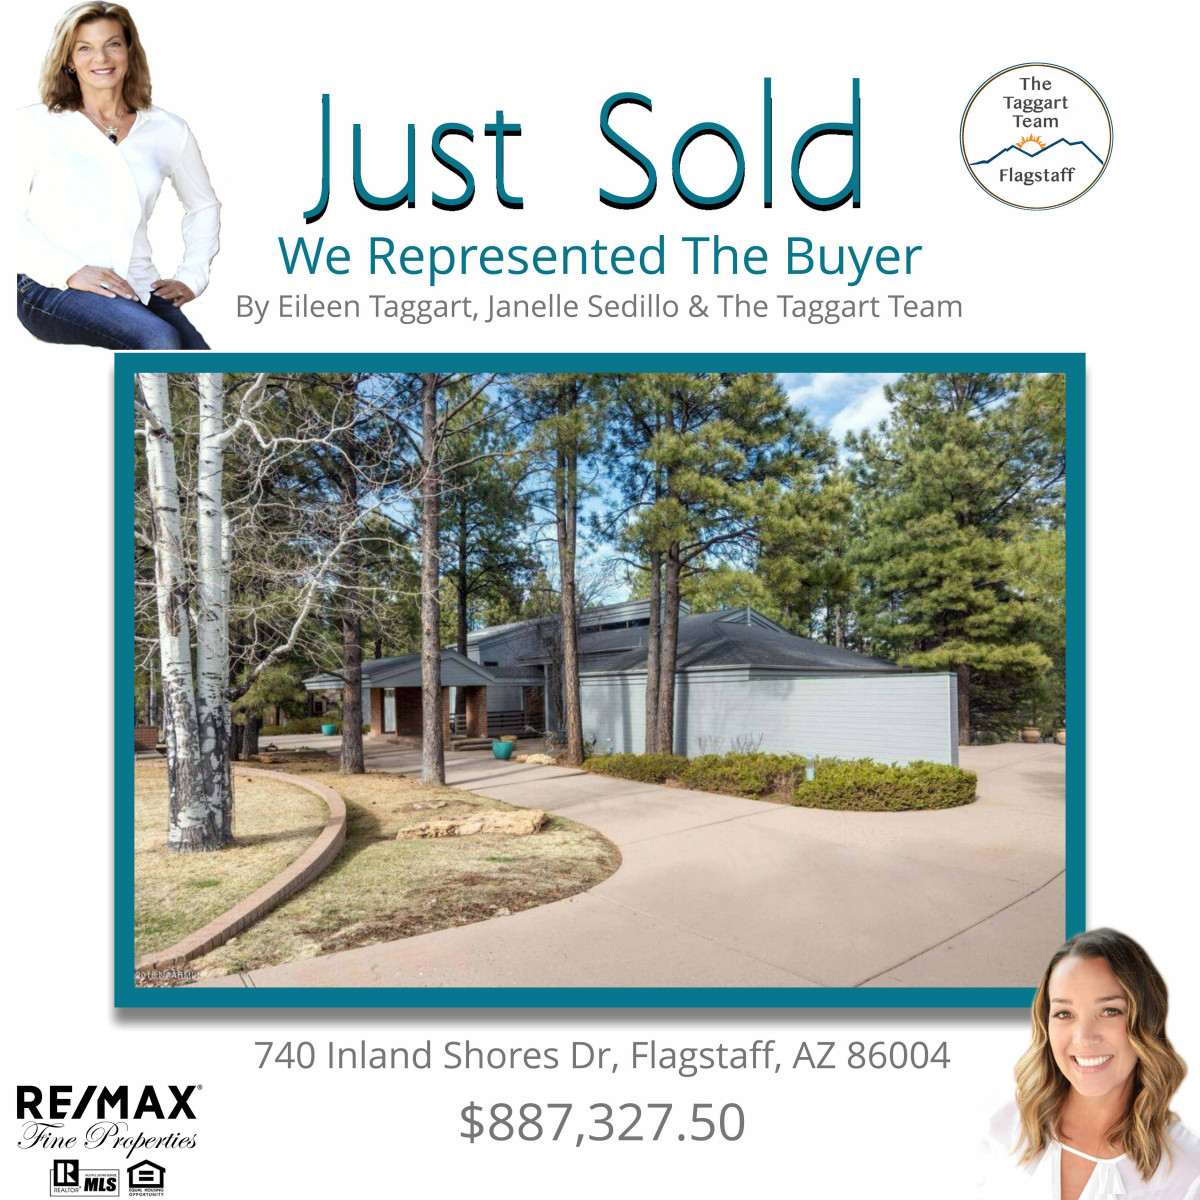 740 Inland Shores Dr. Just Sold